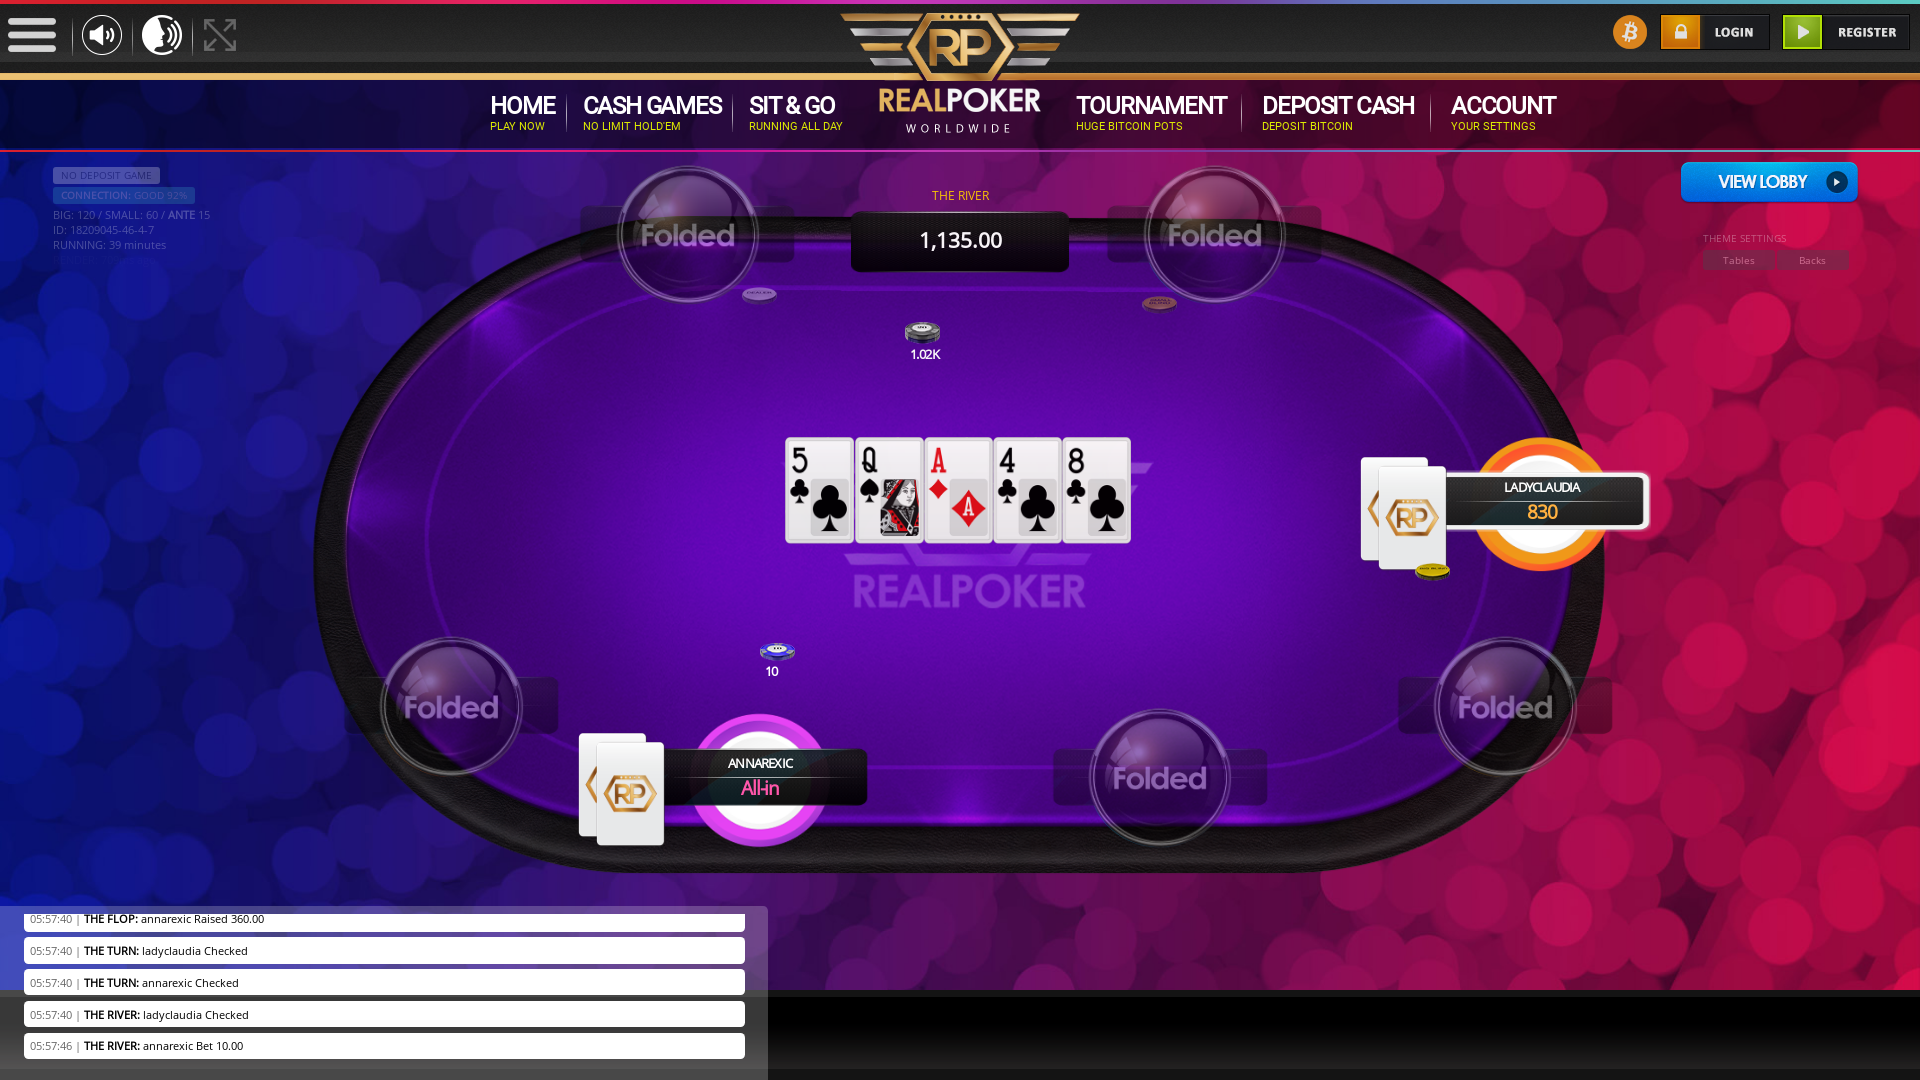 online poker on a 10 player table in the 39th minute match up